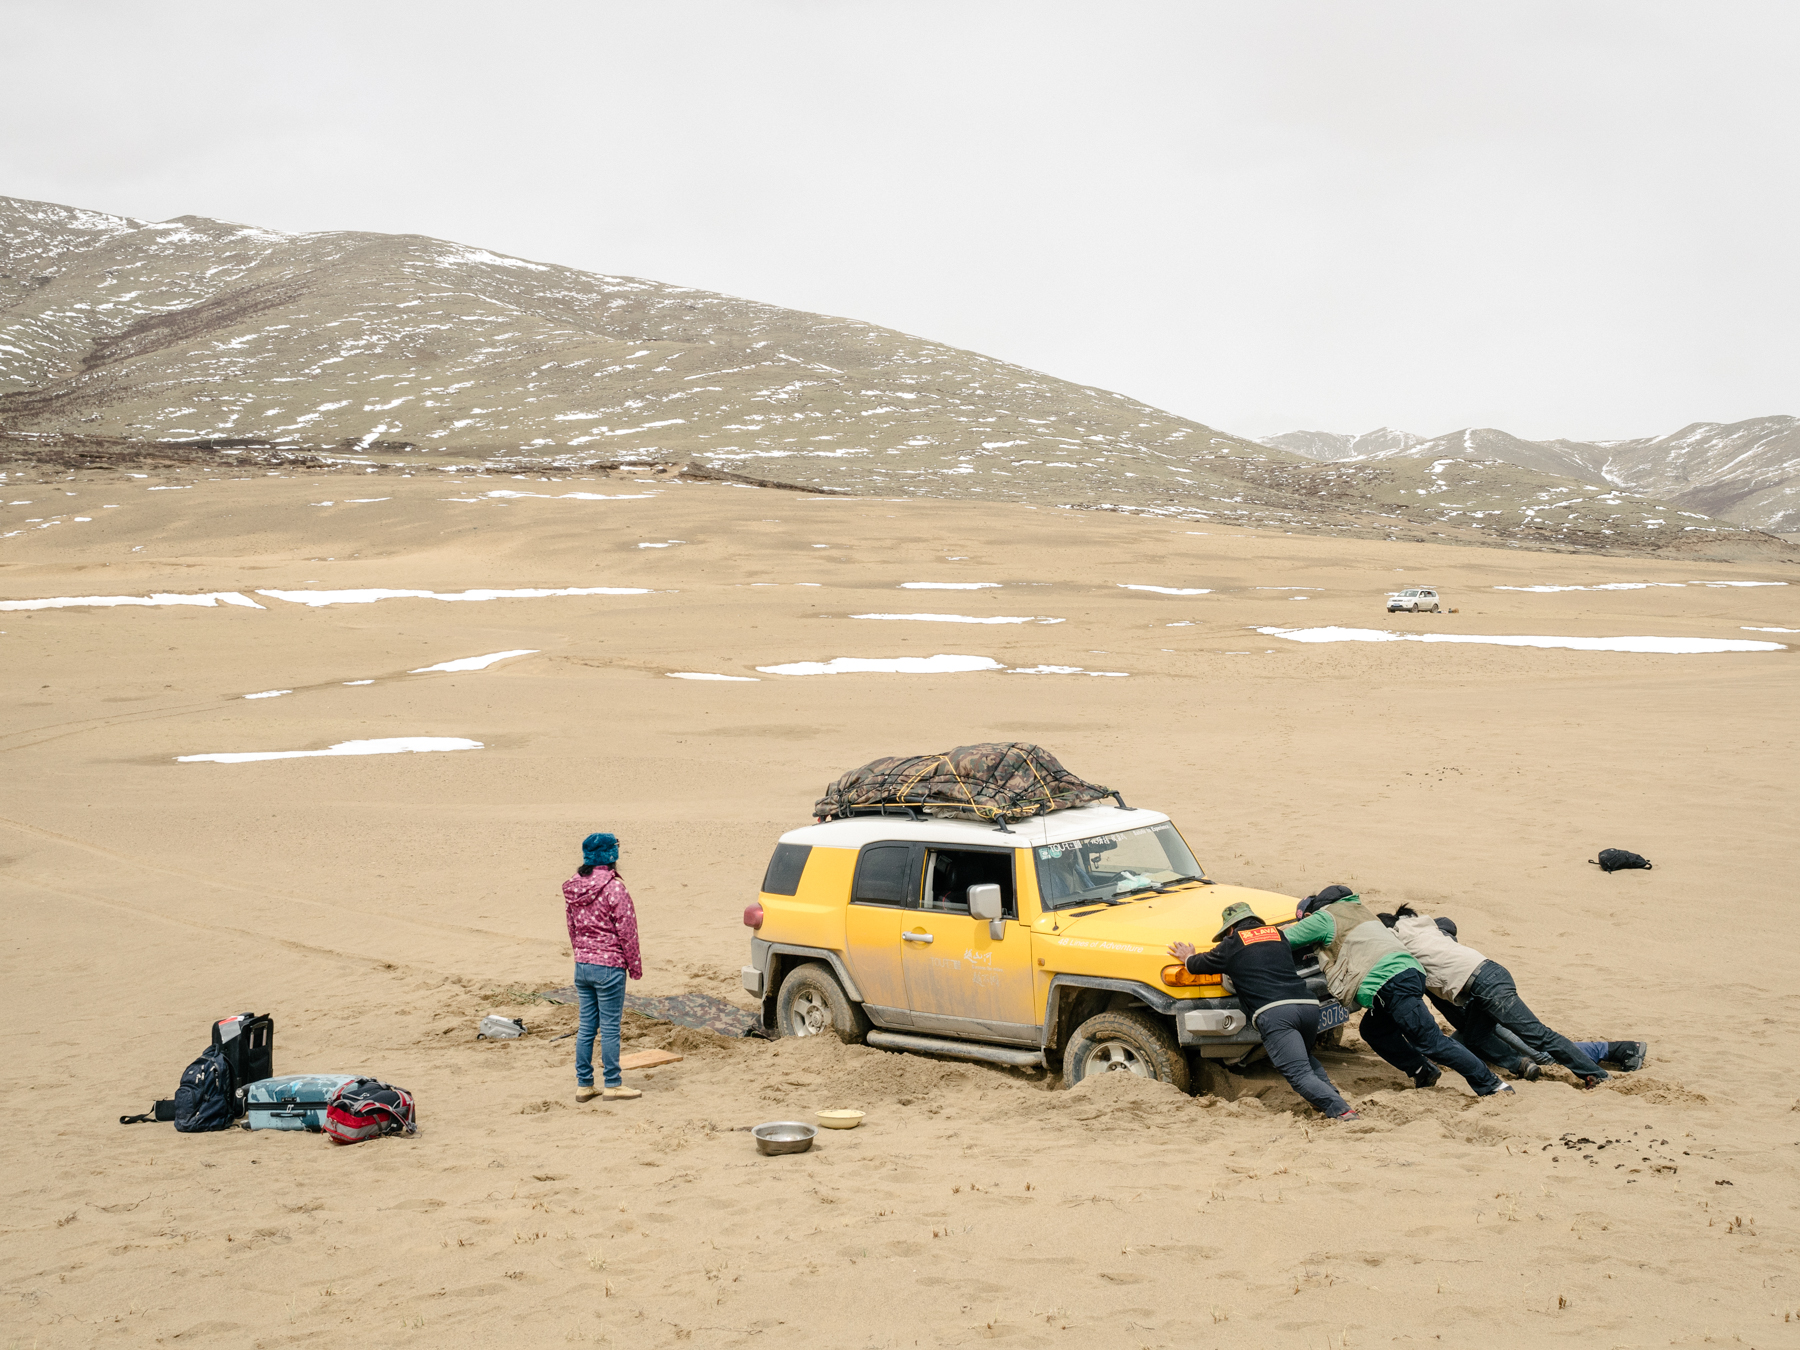 On the border of an unnamed desert that has only formed in the past few years, the team tries to maneuver a car stuck in the sand while in search of a camp site.